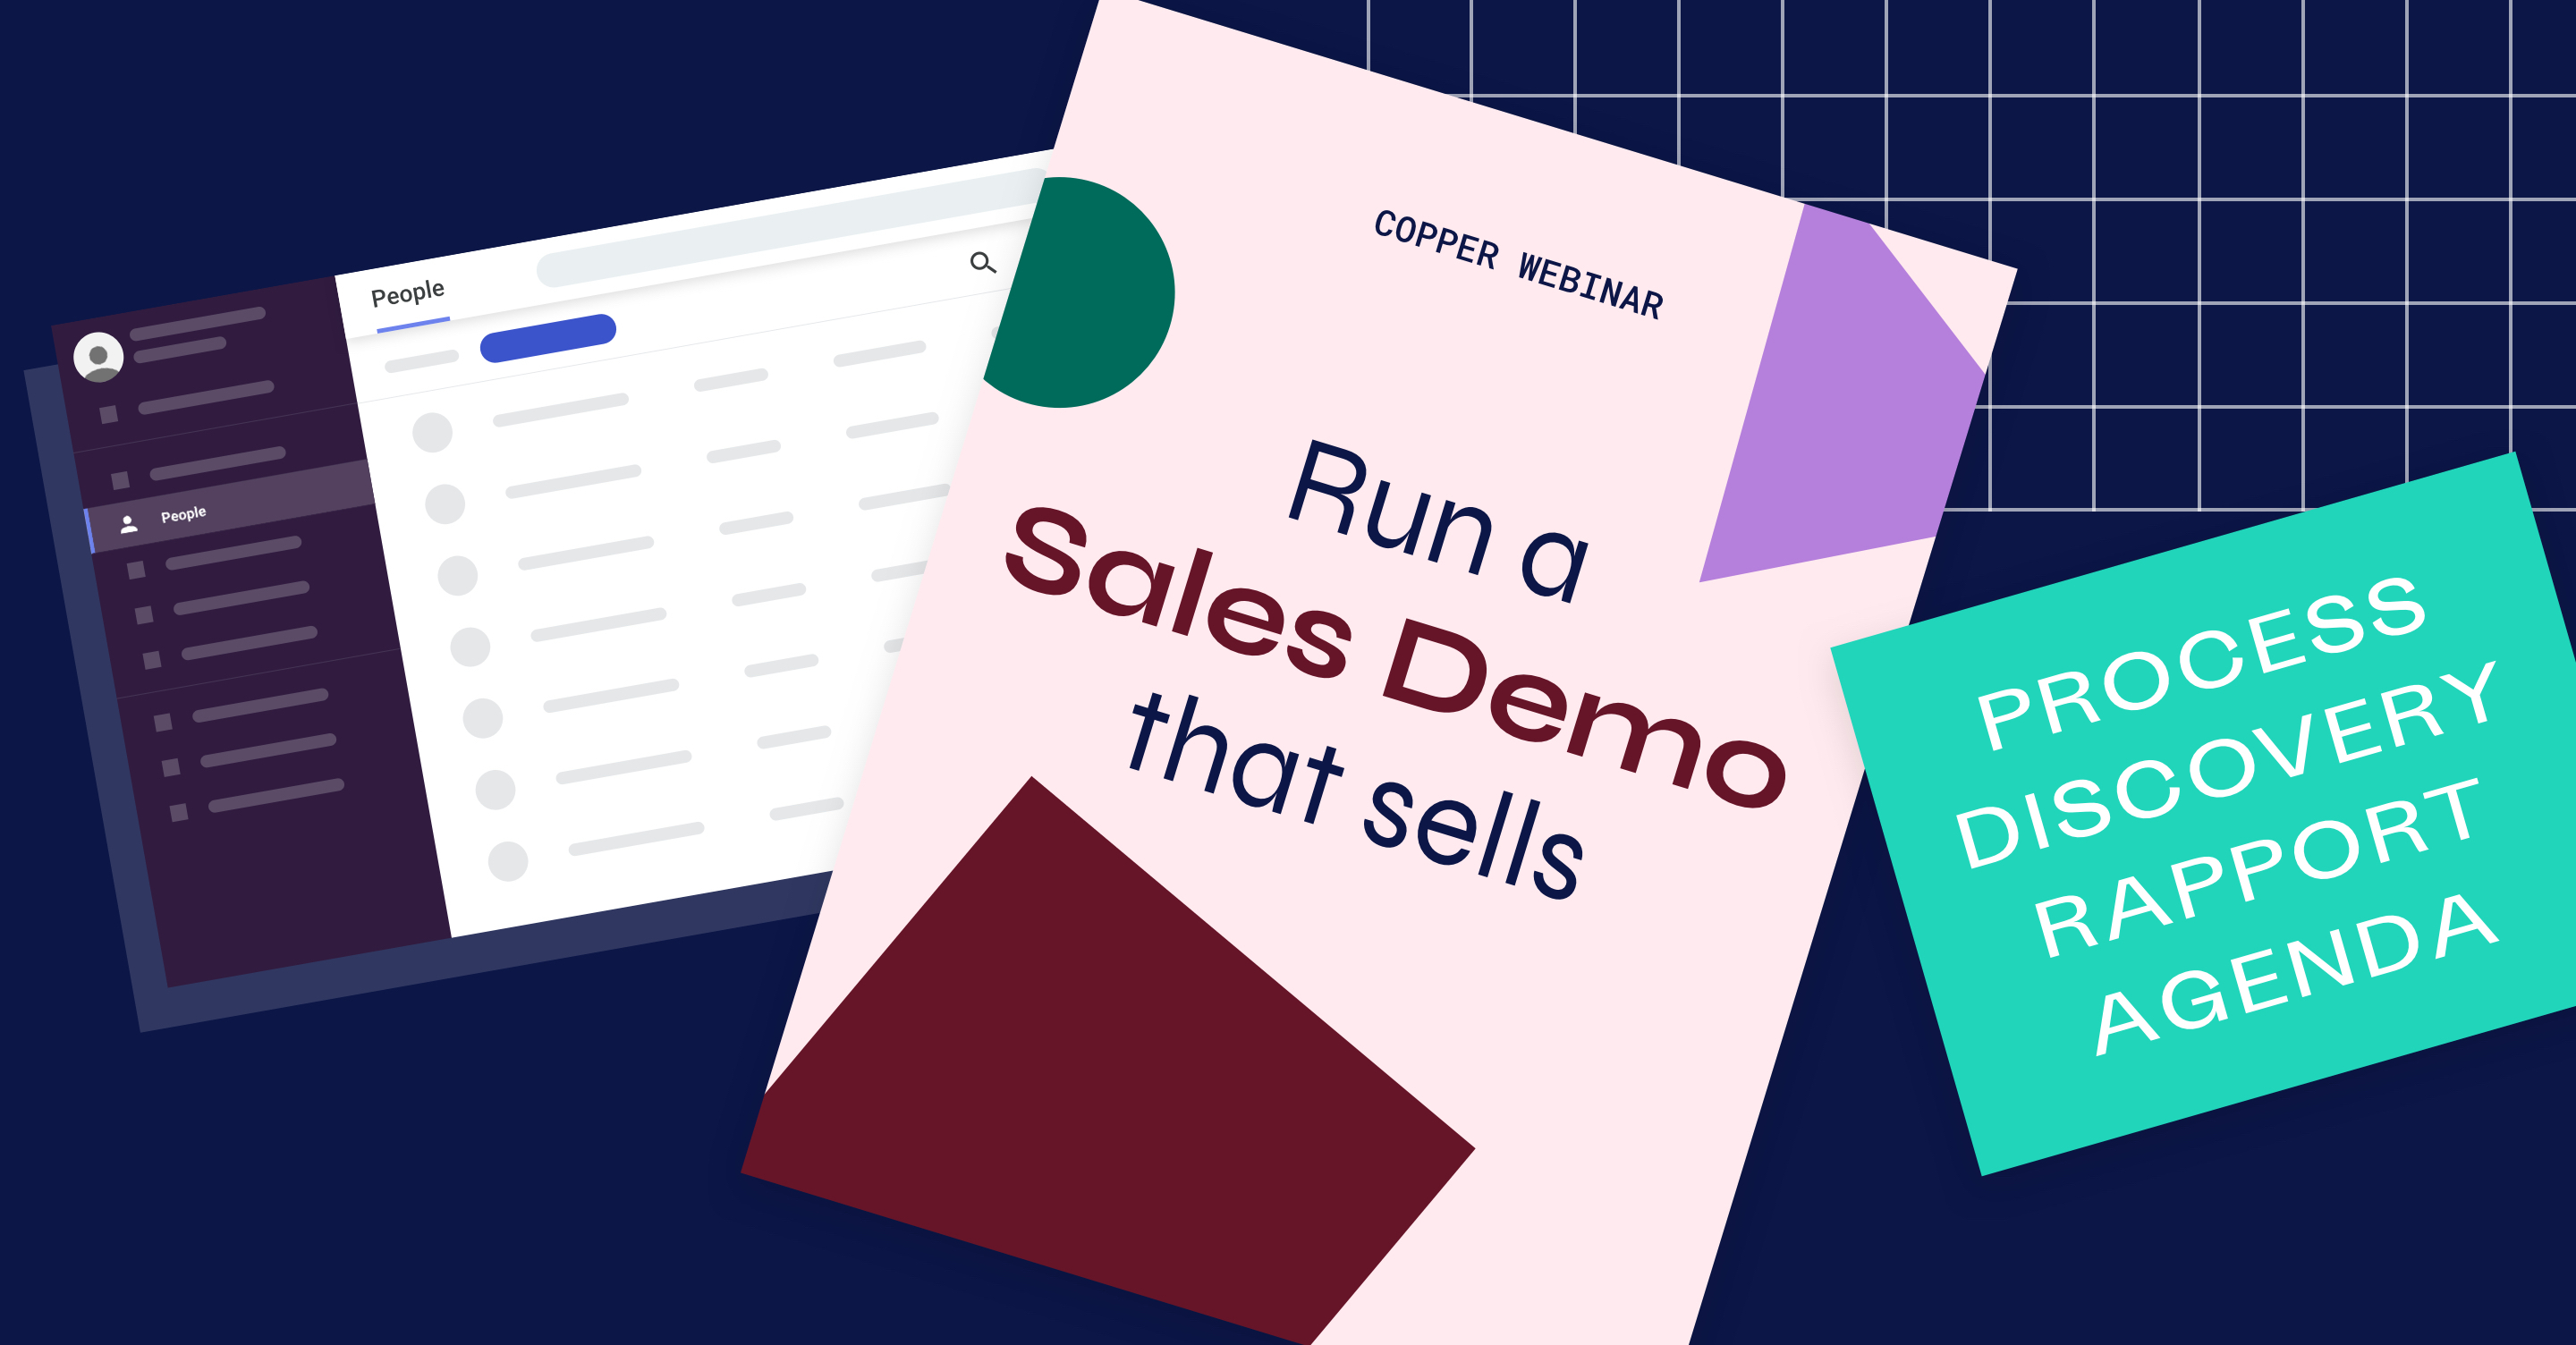 How to Run a Sales Demo That Sells